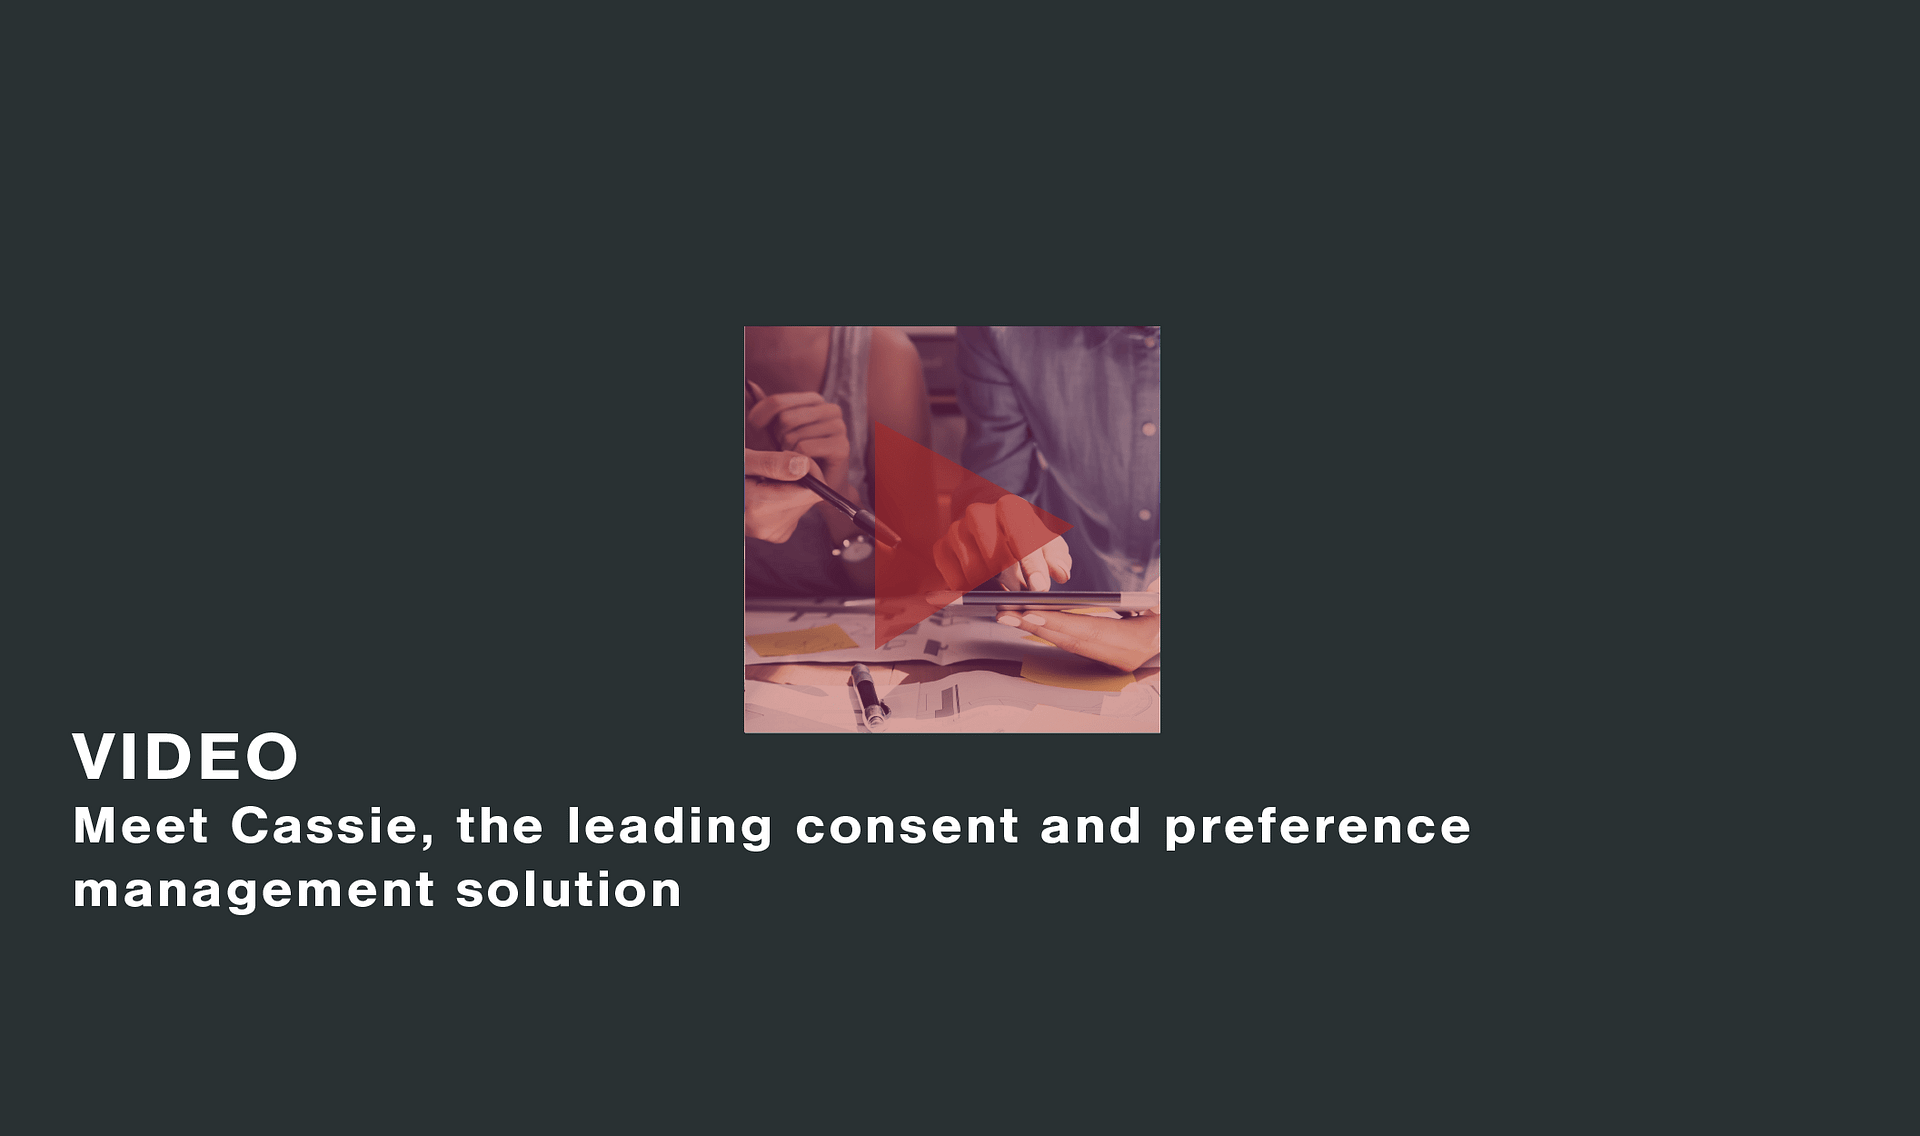 Meet-Cassie-the-leading-consent-and-preference-management-solution